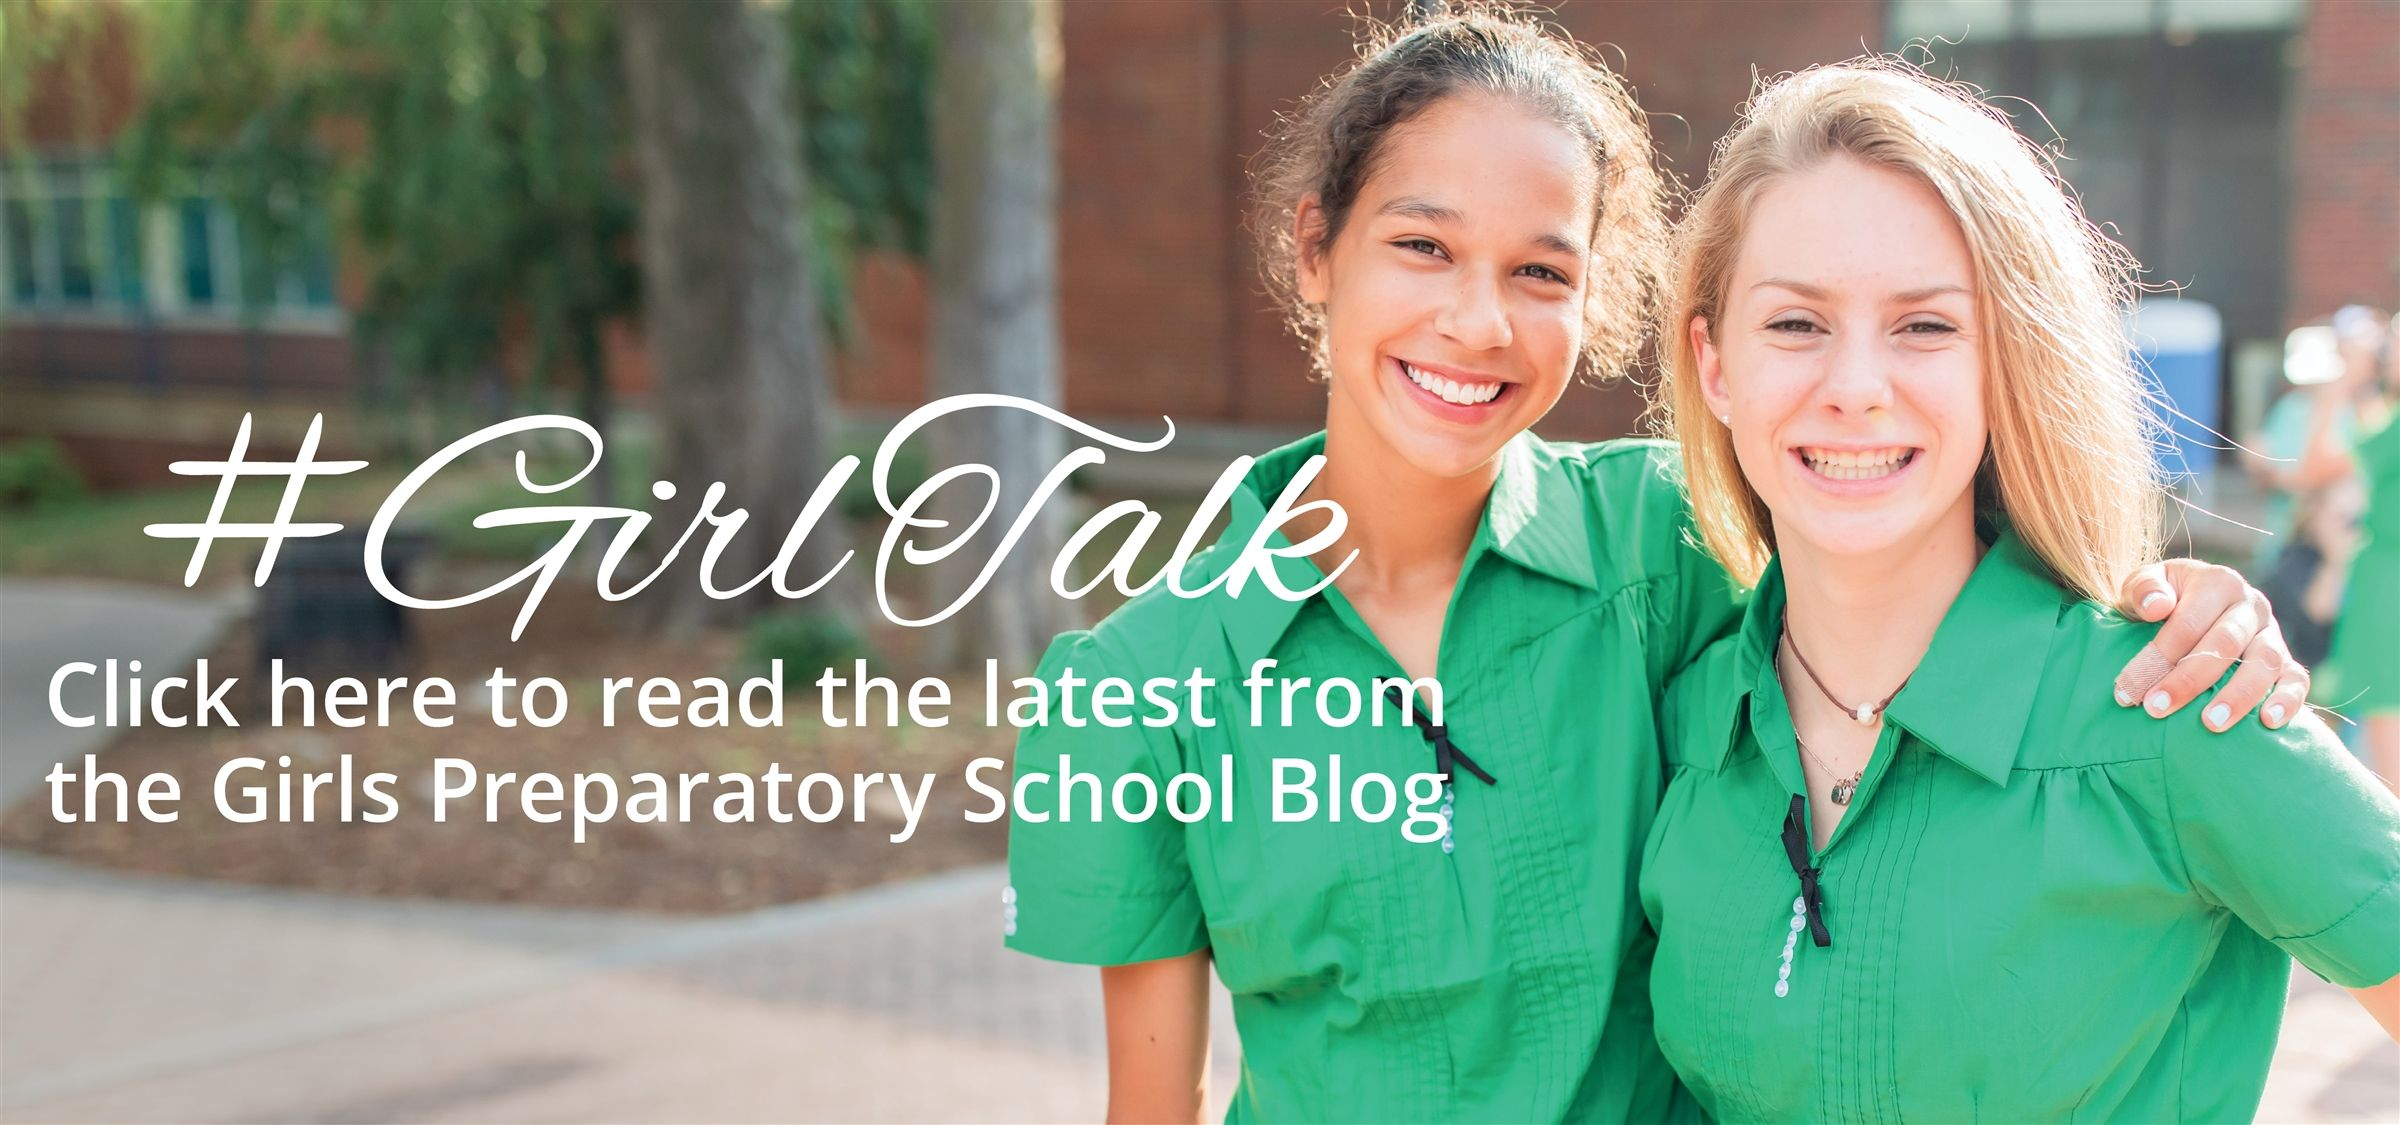 Click here to read the latest from the Girls Preparatory School Blog